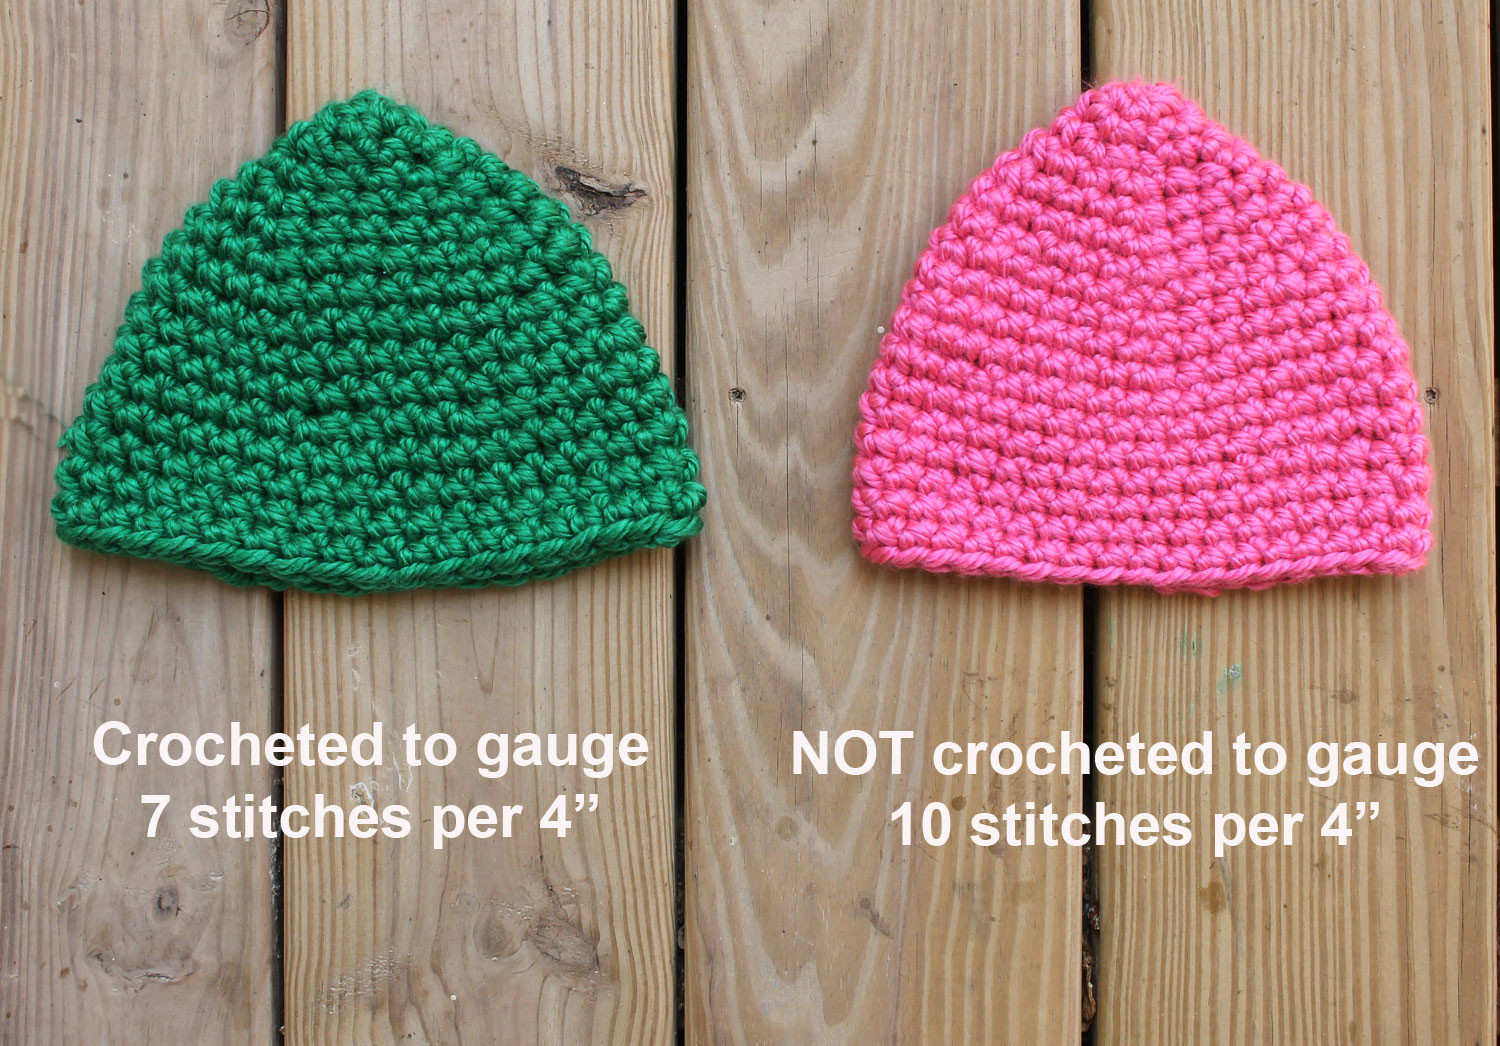 Crochet Gauge 101 Why Gauge Matters and How to Match It